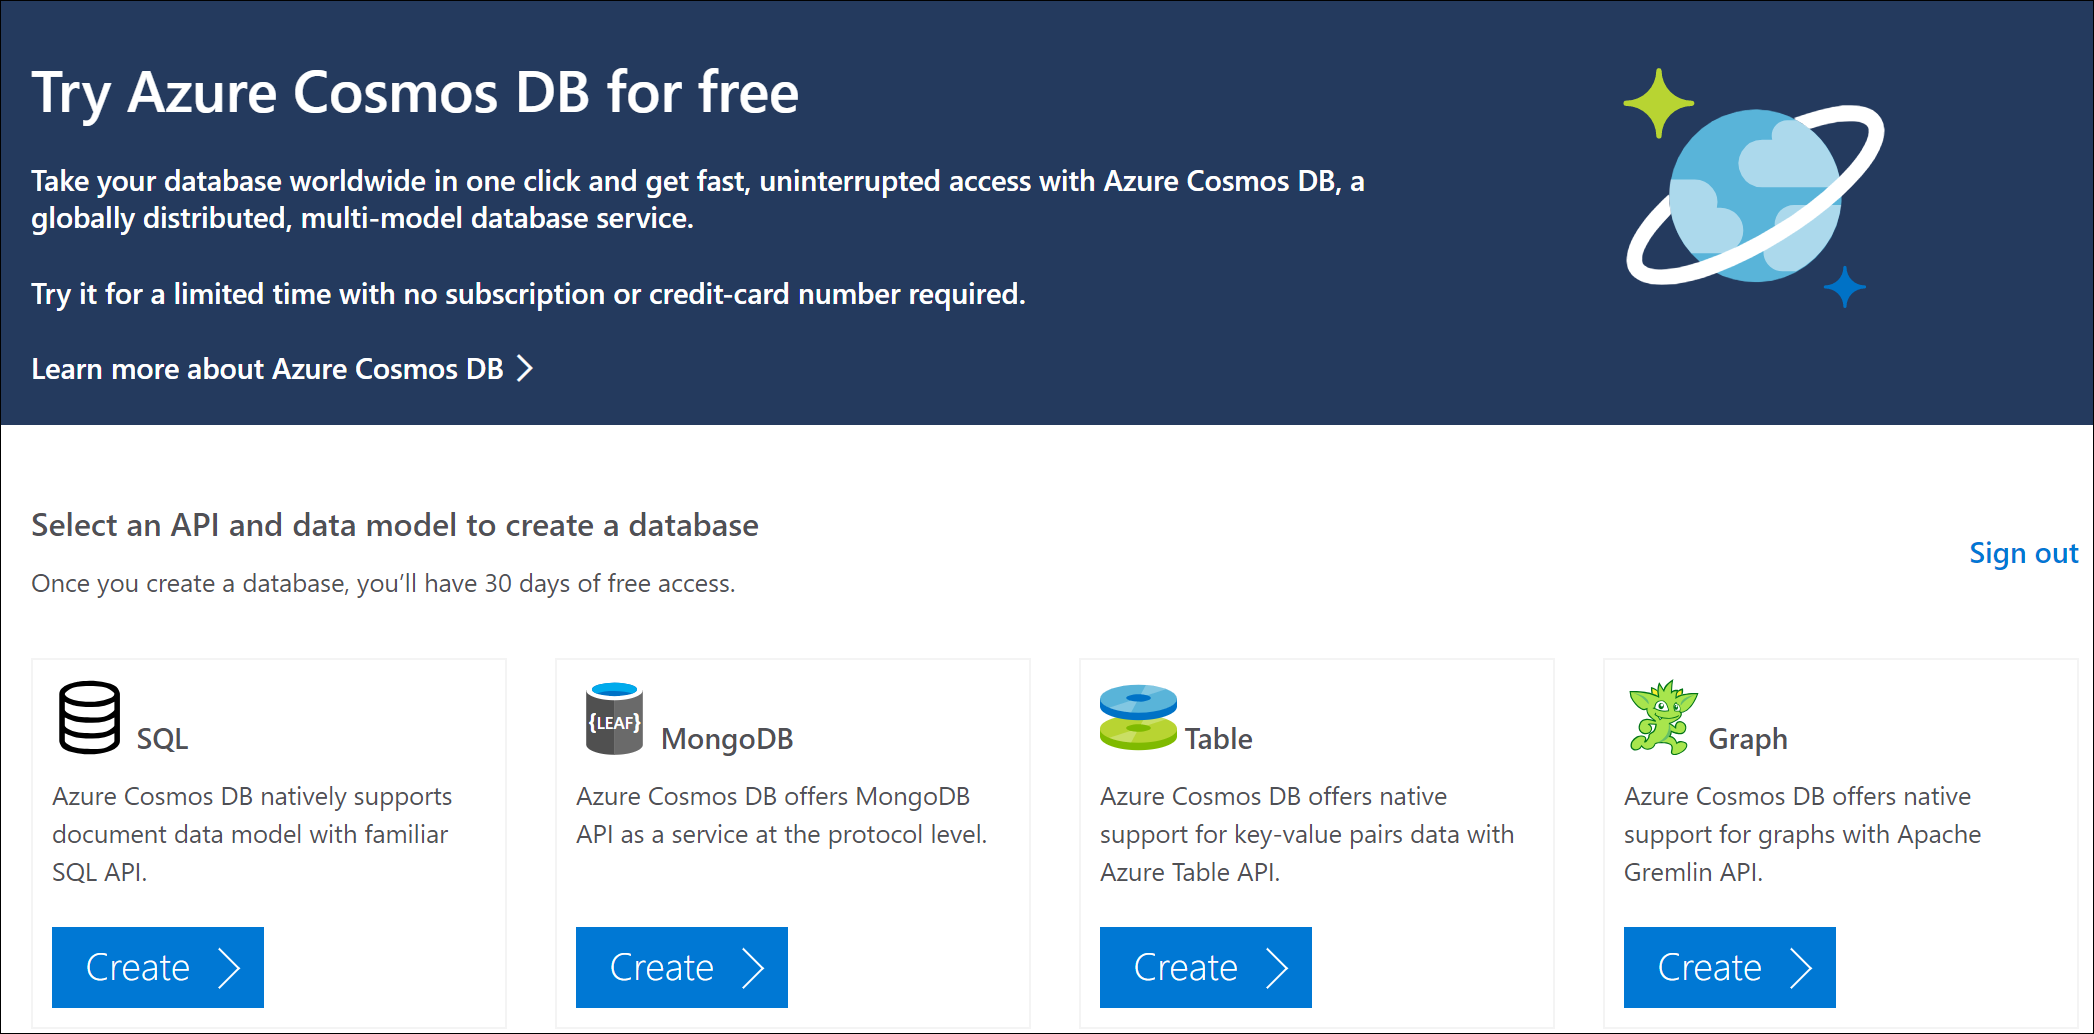 Azure Cosmos DB is also included in the Azure free account, which includes  400 RU/s for 12 months.